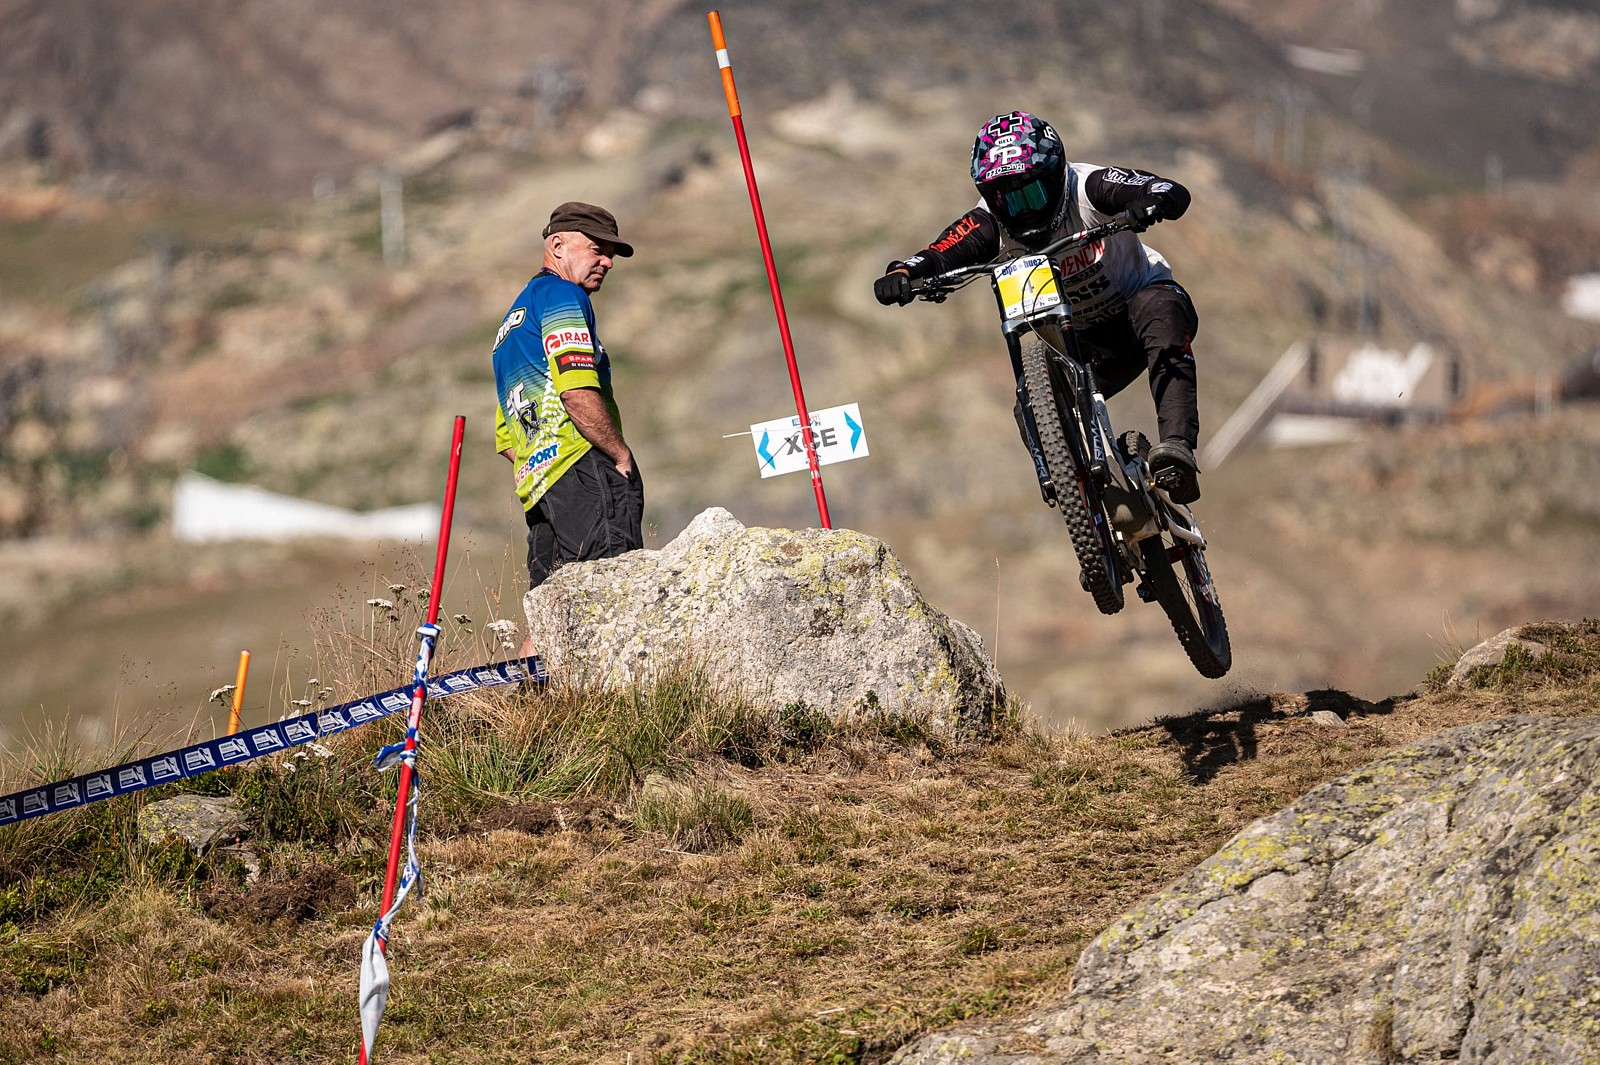 French Cup DH #1 Alpe d'Huez   Remi Thirion - French Cup DH #1 Alpe d'Huez - Mountain Biking Pictures - Vital MTB